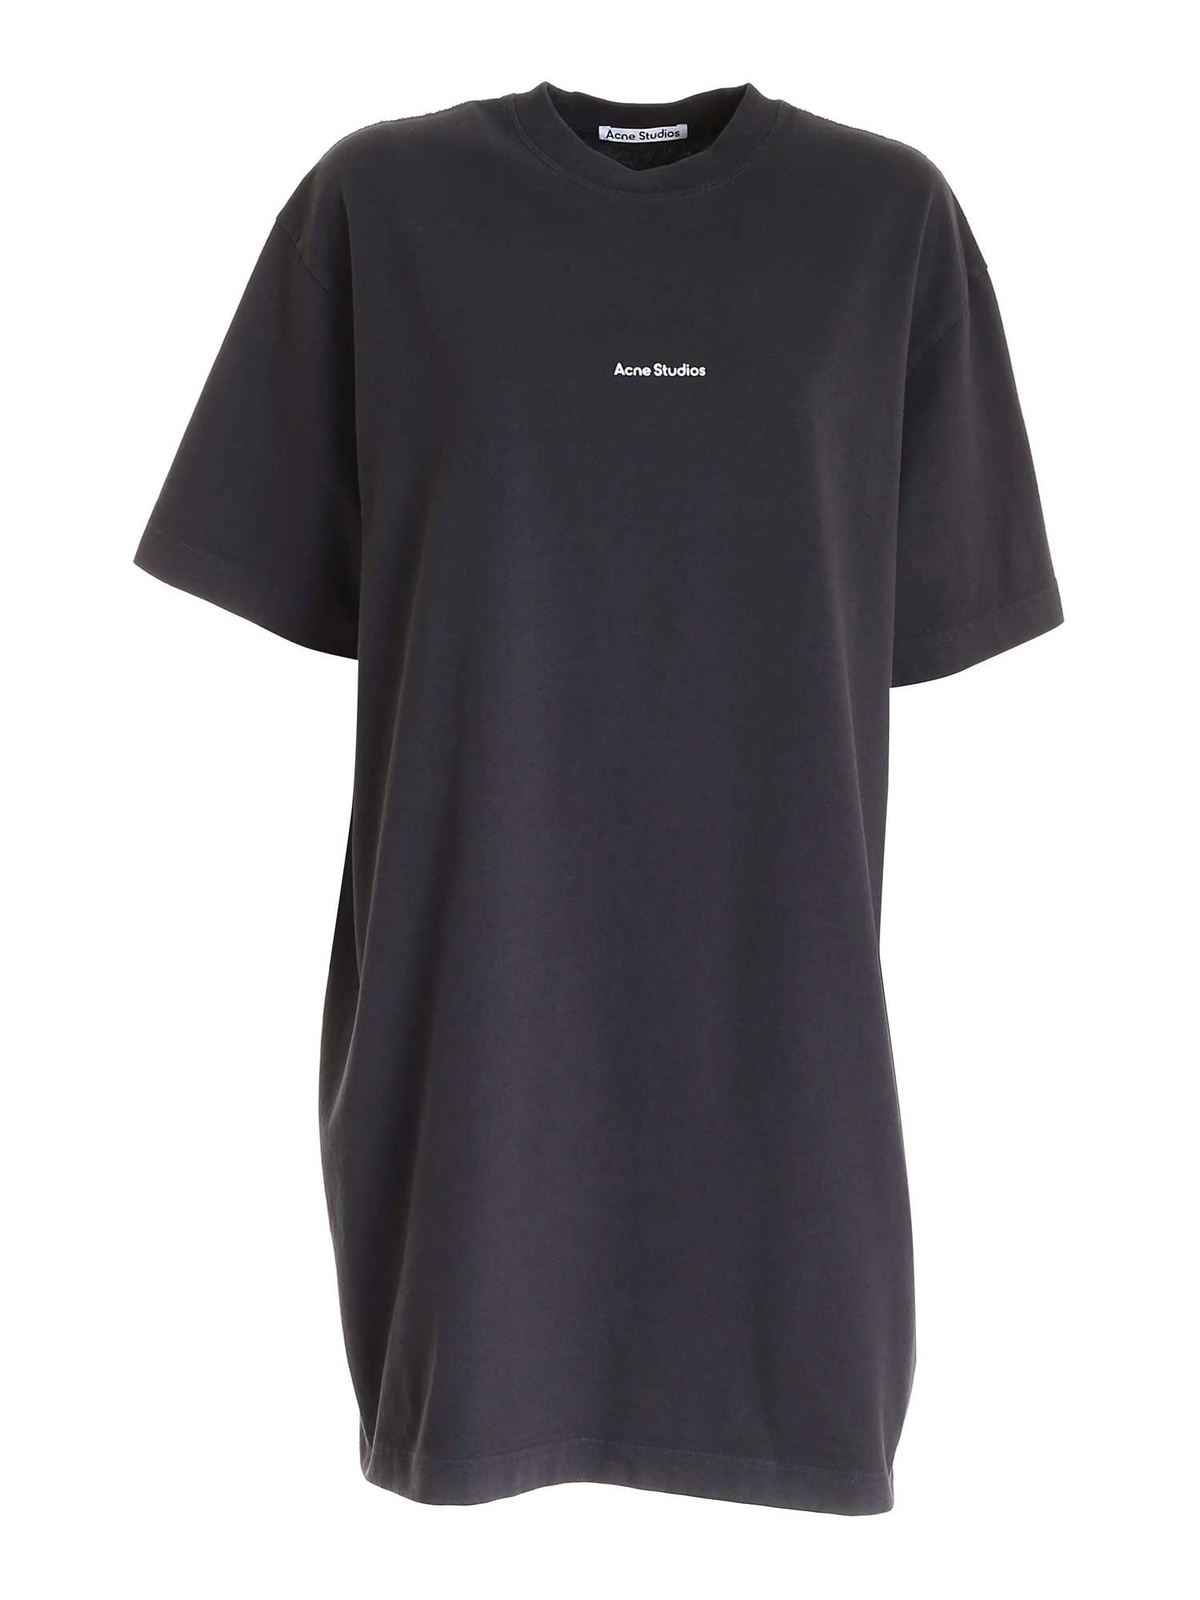 Acne Studios LOGO PRINT MAXI T-SHIRT IN BLACK